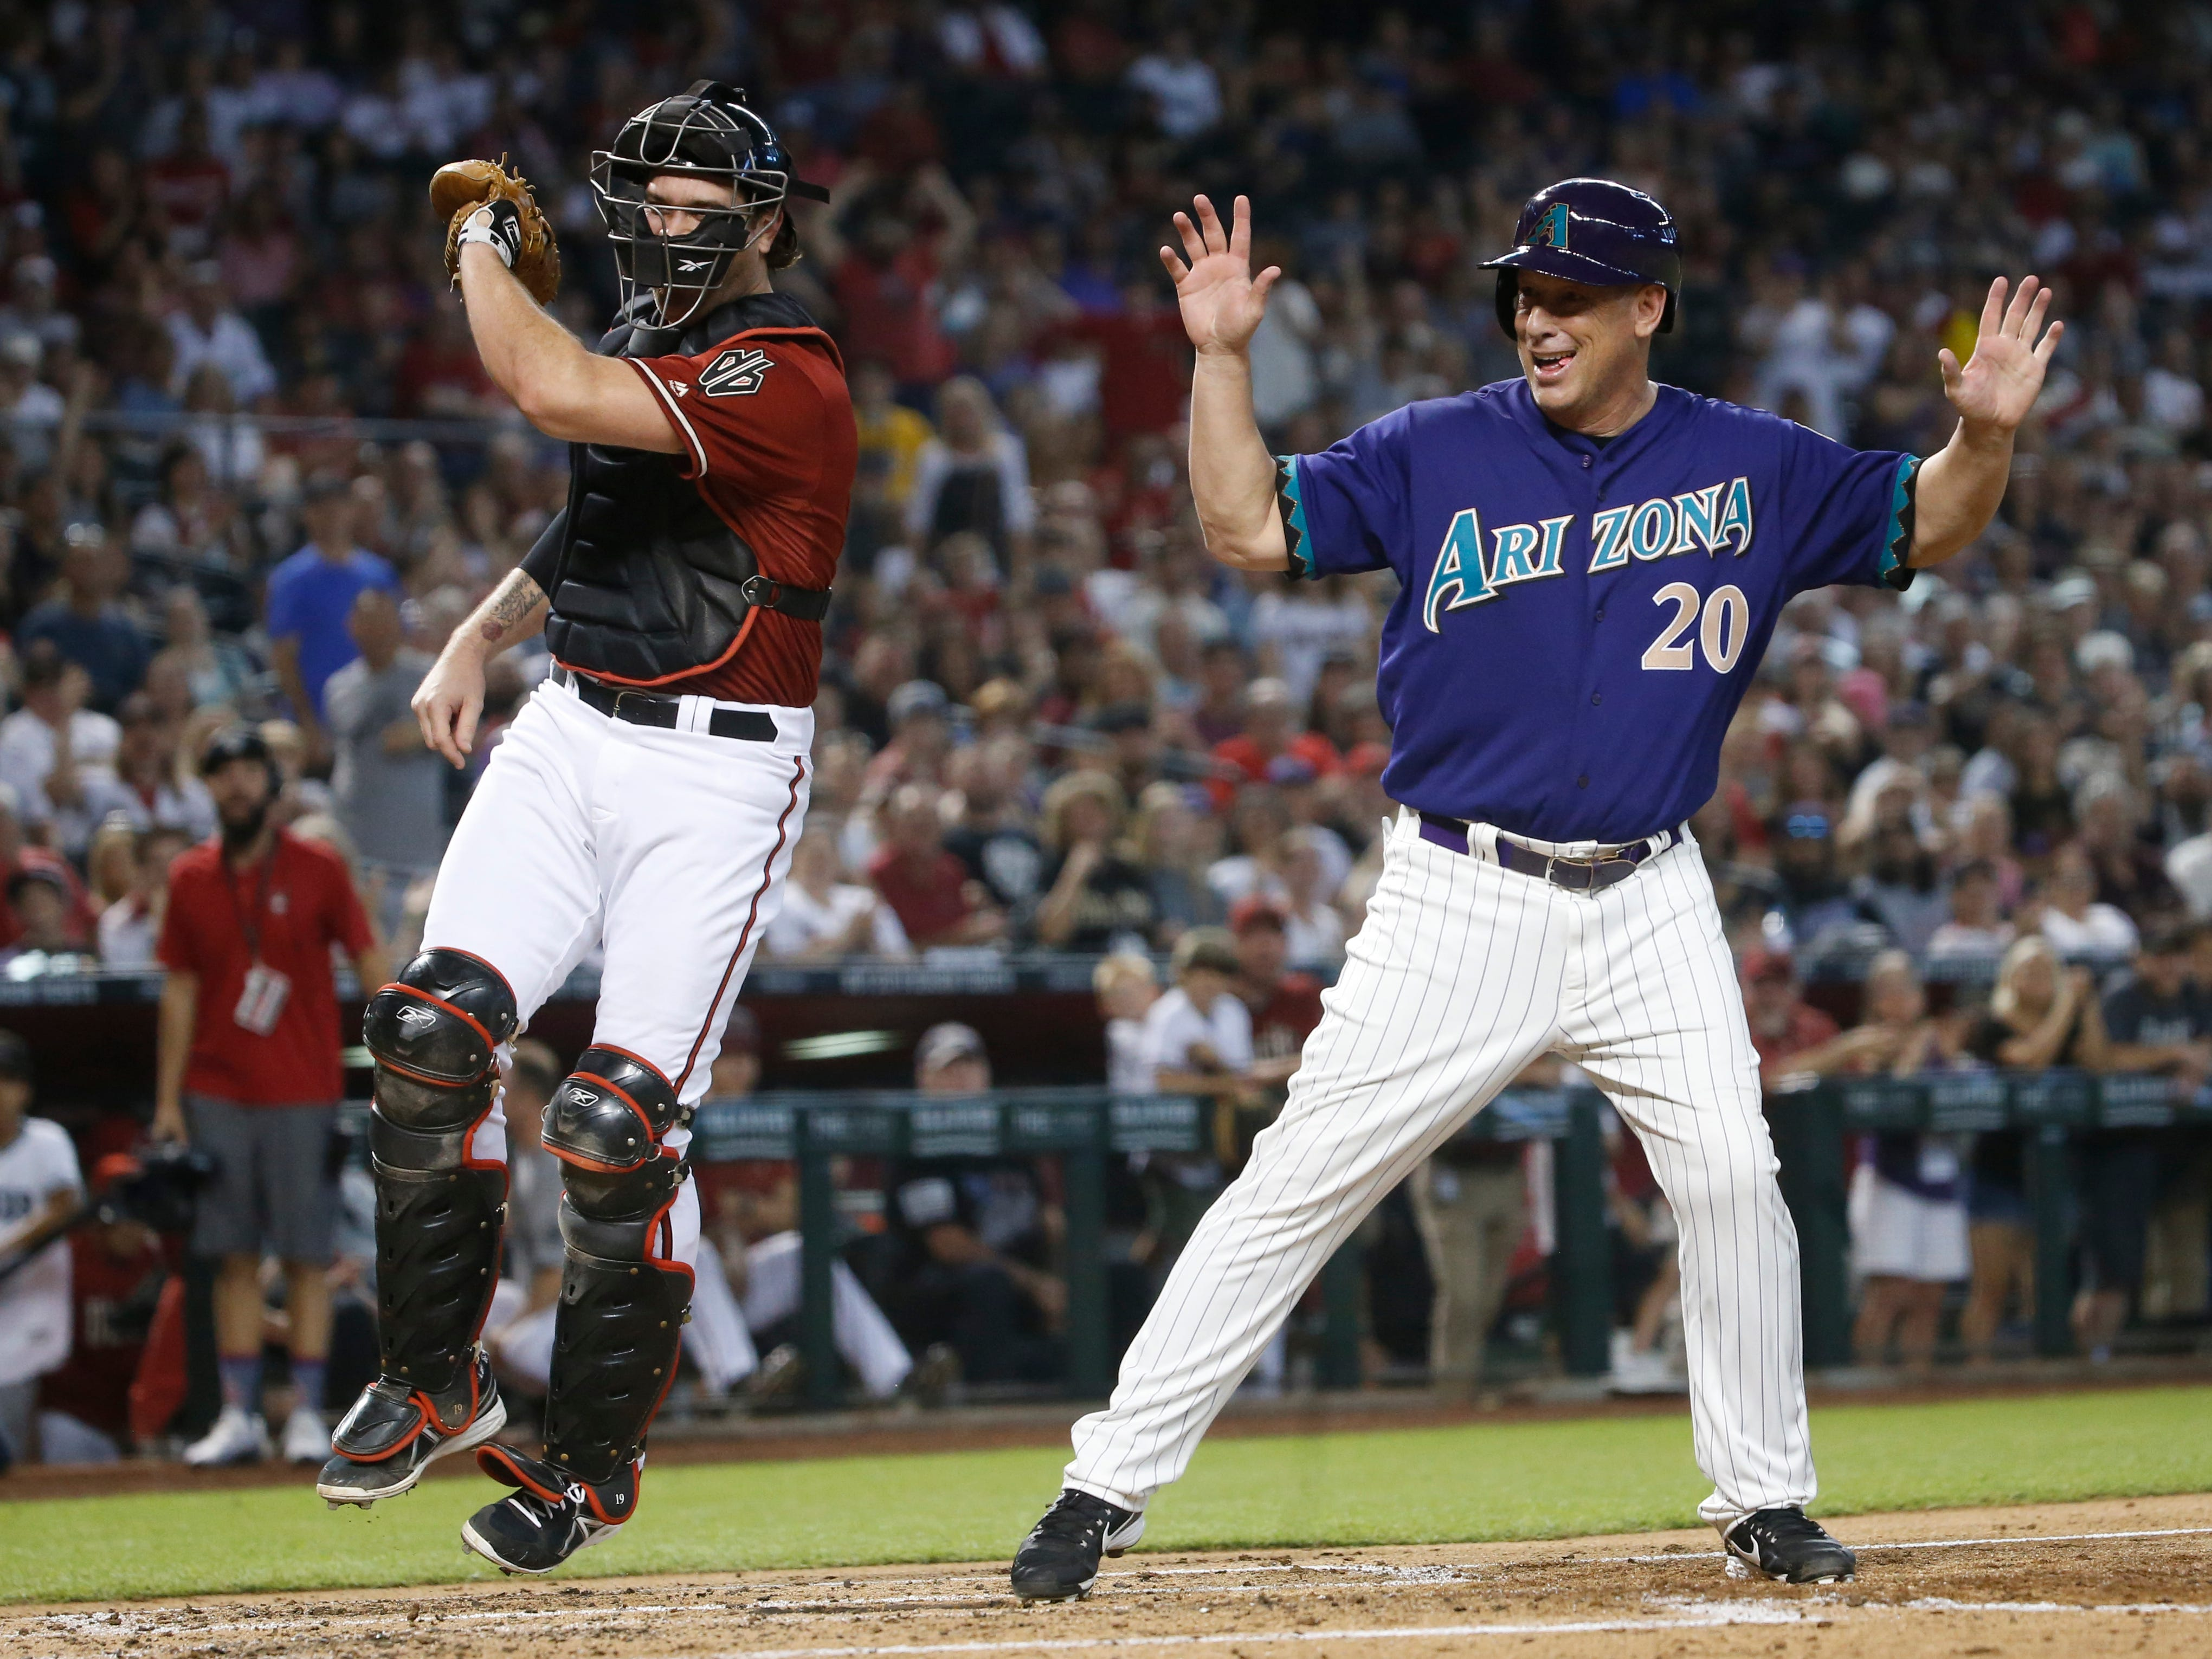 Diamondbacks Red team's Chris Snyder reacts after tagging out Purple team's Luis Gonzalez (20) during the Generations Diamondbacks Alumni game at Chase Field in Phoenix, Ariz. on Aug. 4, 2018.